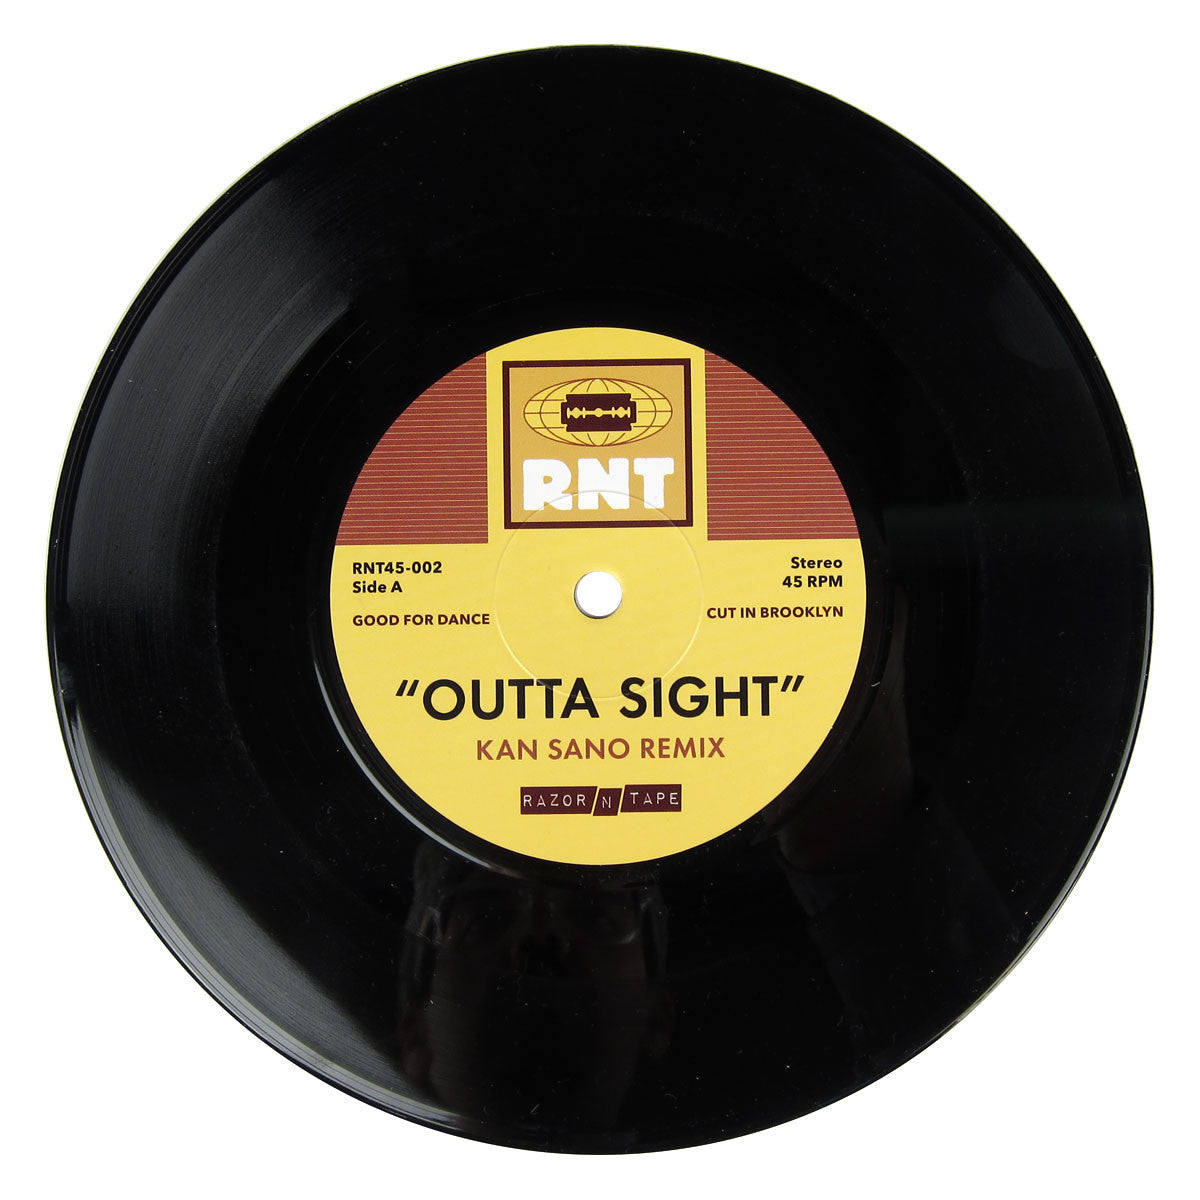 Stevie Wonder: Outta Sight (Kan Sano / Freddie Joachim Remix) Vinyl 7""